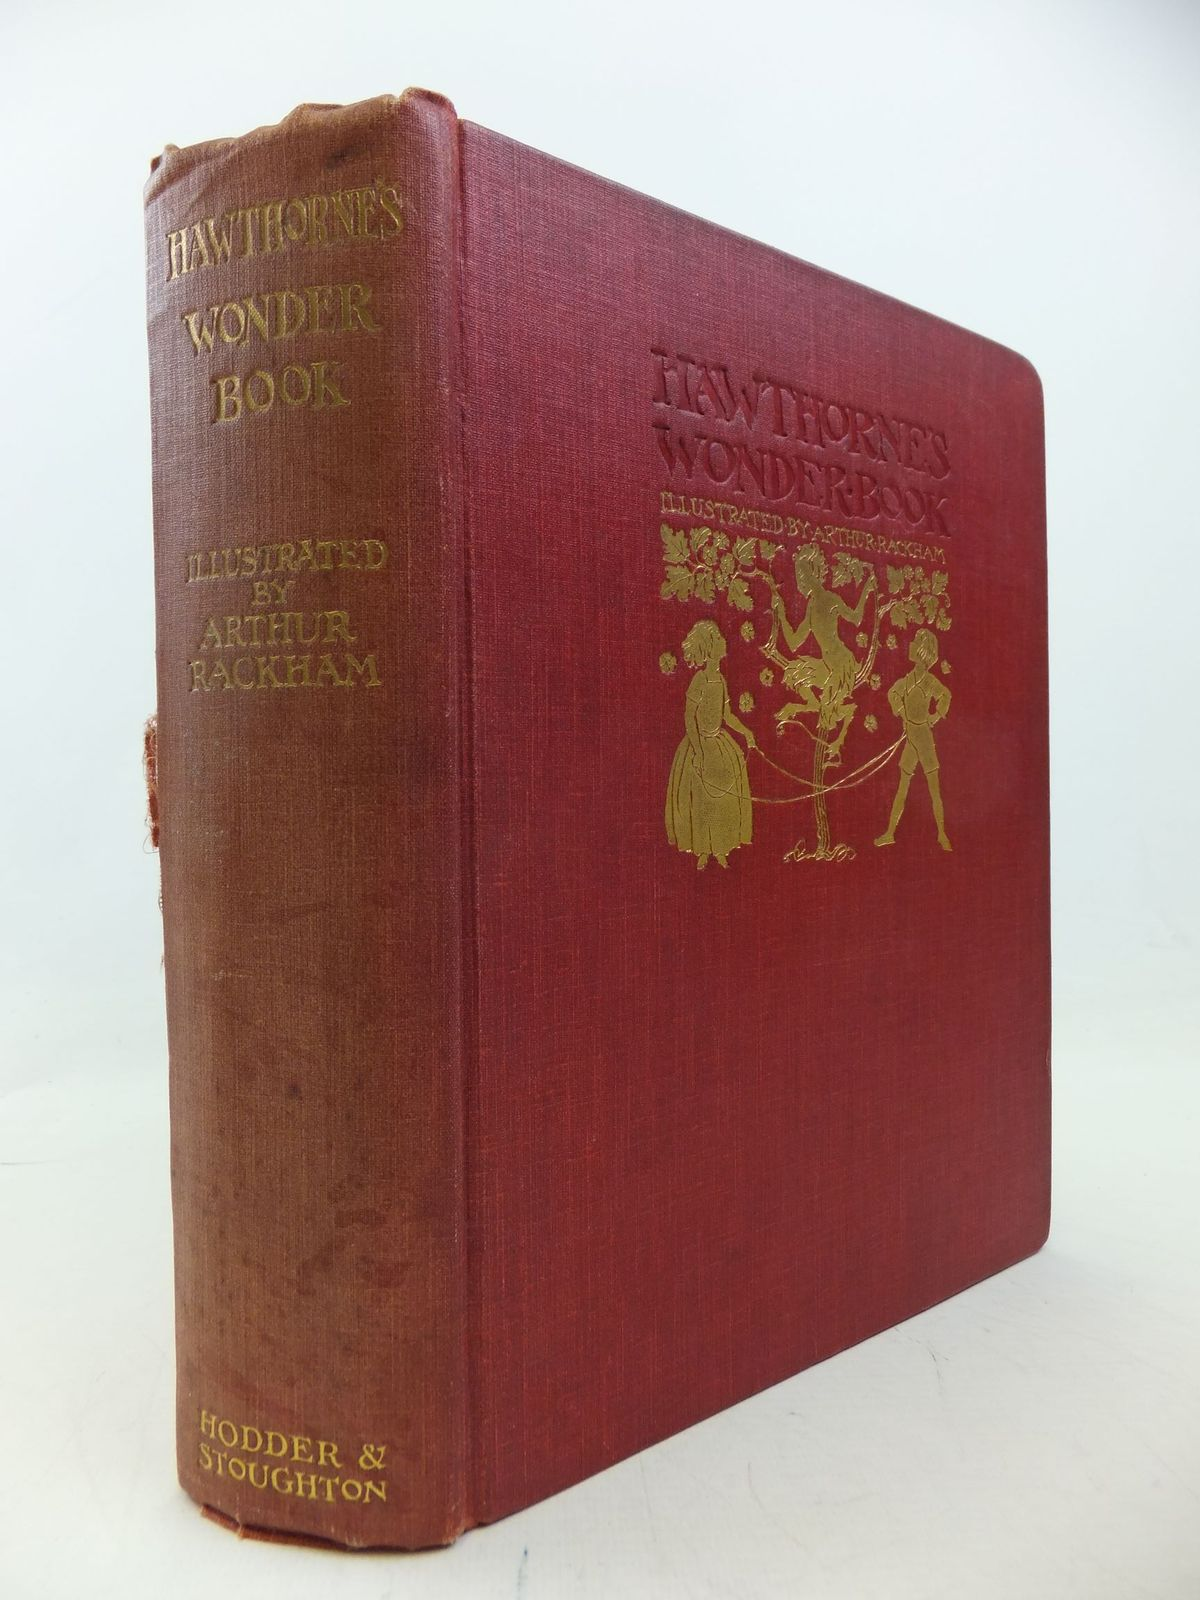 Photo of A WONDER BOOK written by Hawthorne, Nathaniel illustrated by Rackham, Arthur published by Hodder & Stoughton (STOCK CODE: 1710414)  for sale by Stella & Rose's Books